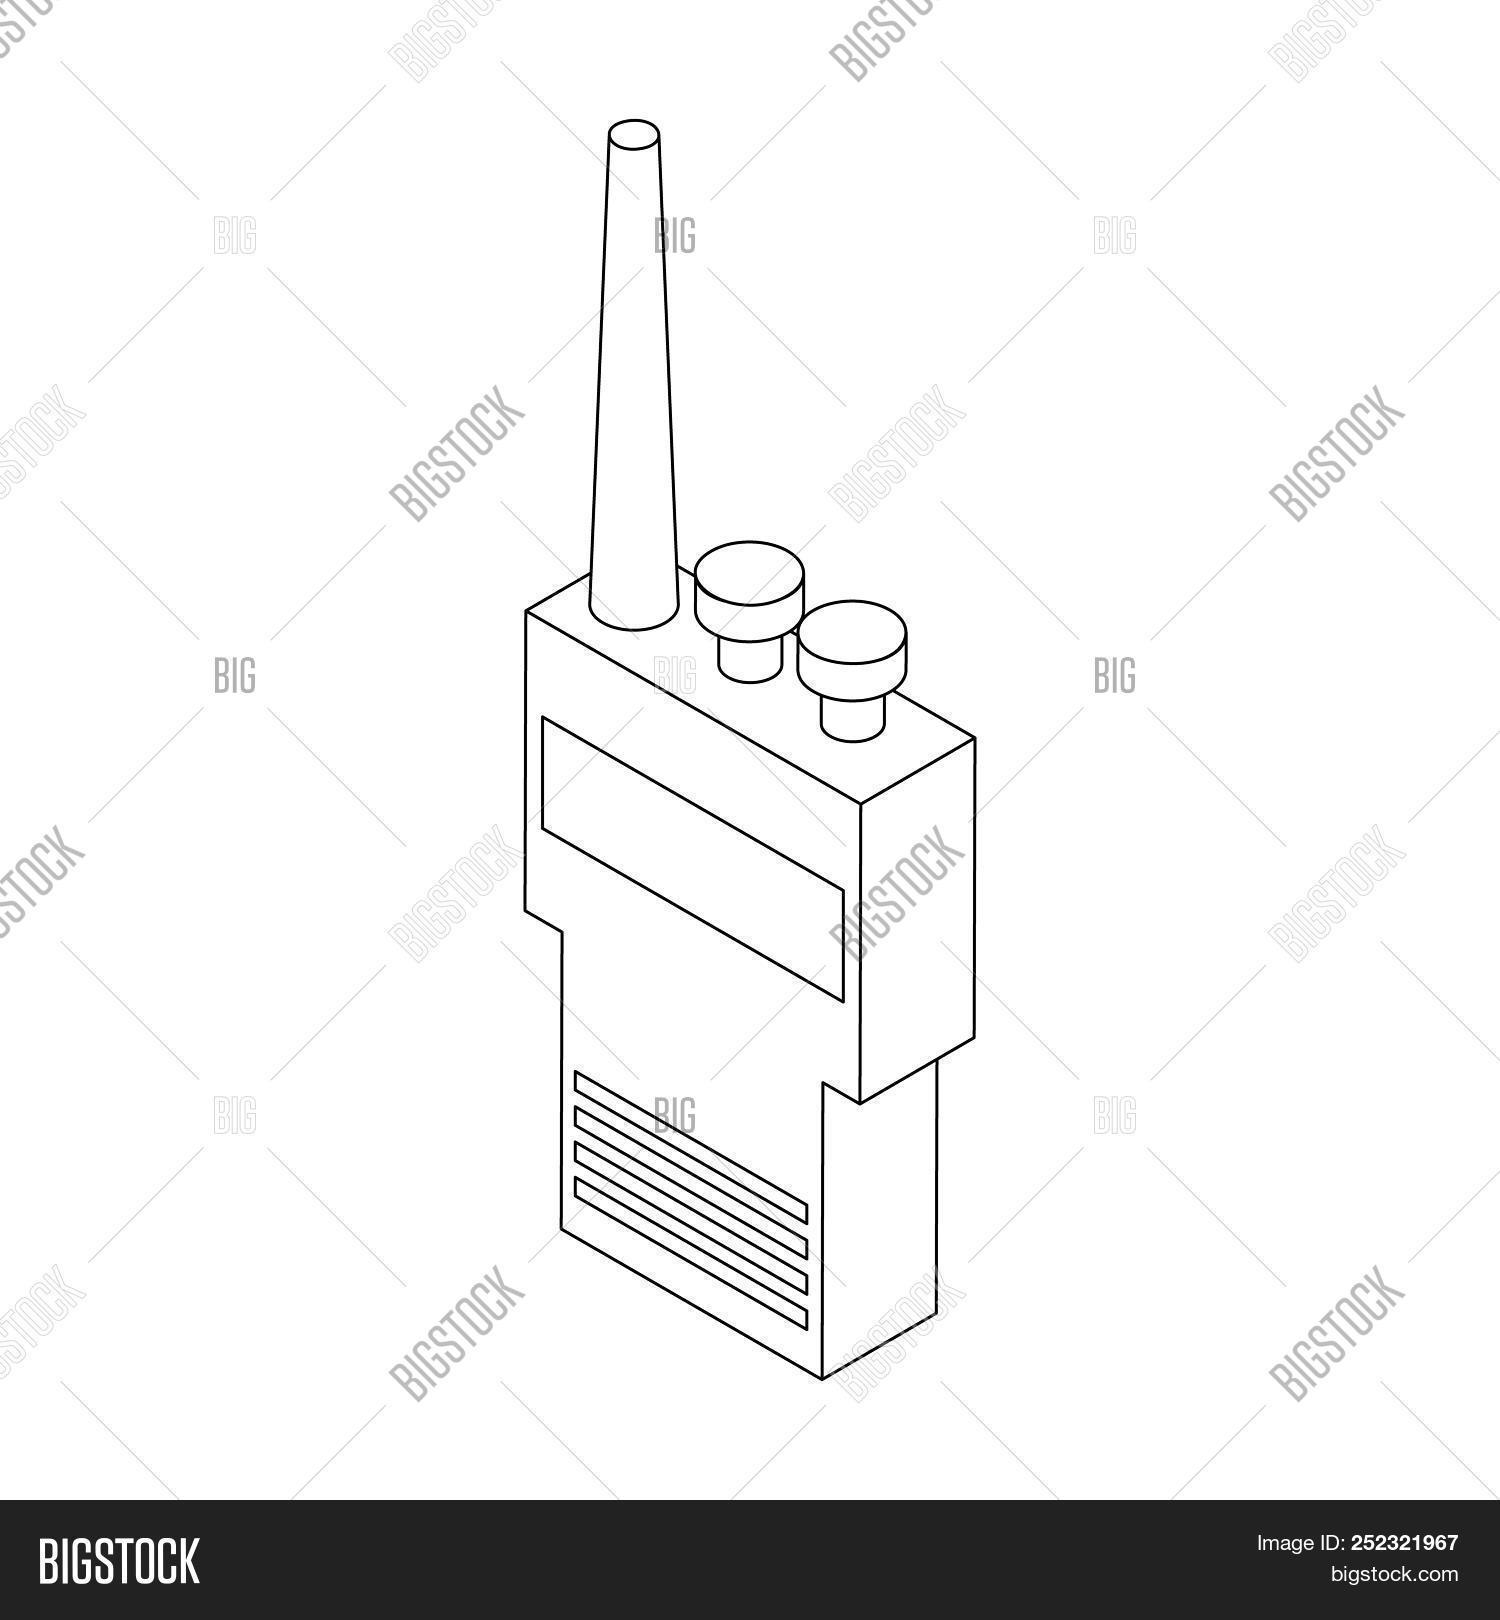 hight resolution of portable handheld radio icon in isometric 3d style on a white background